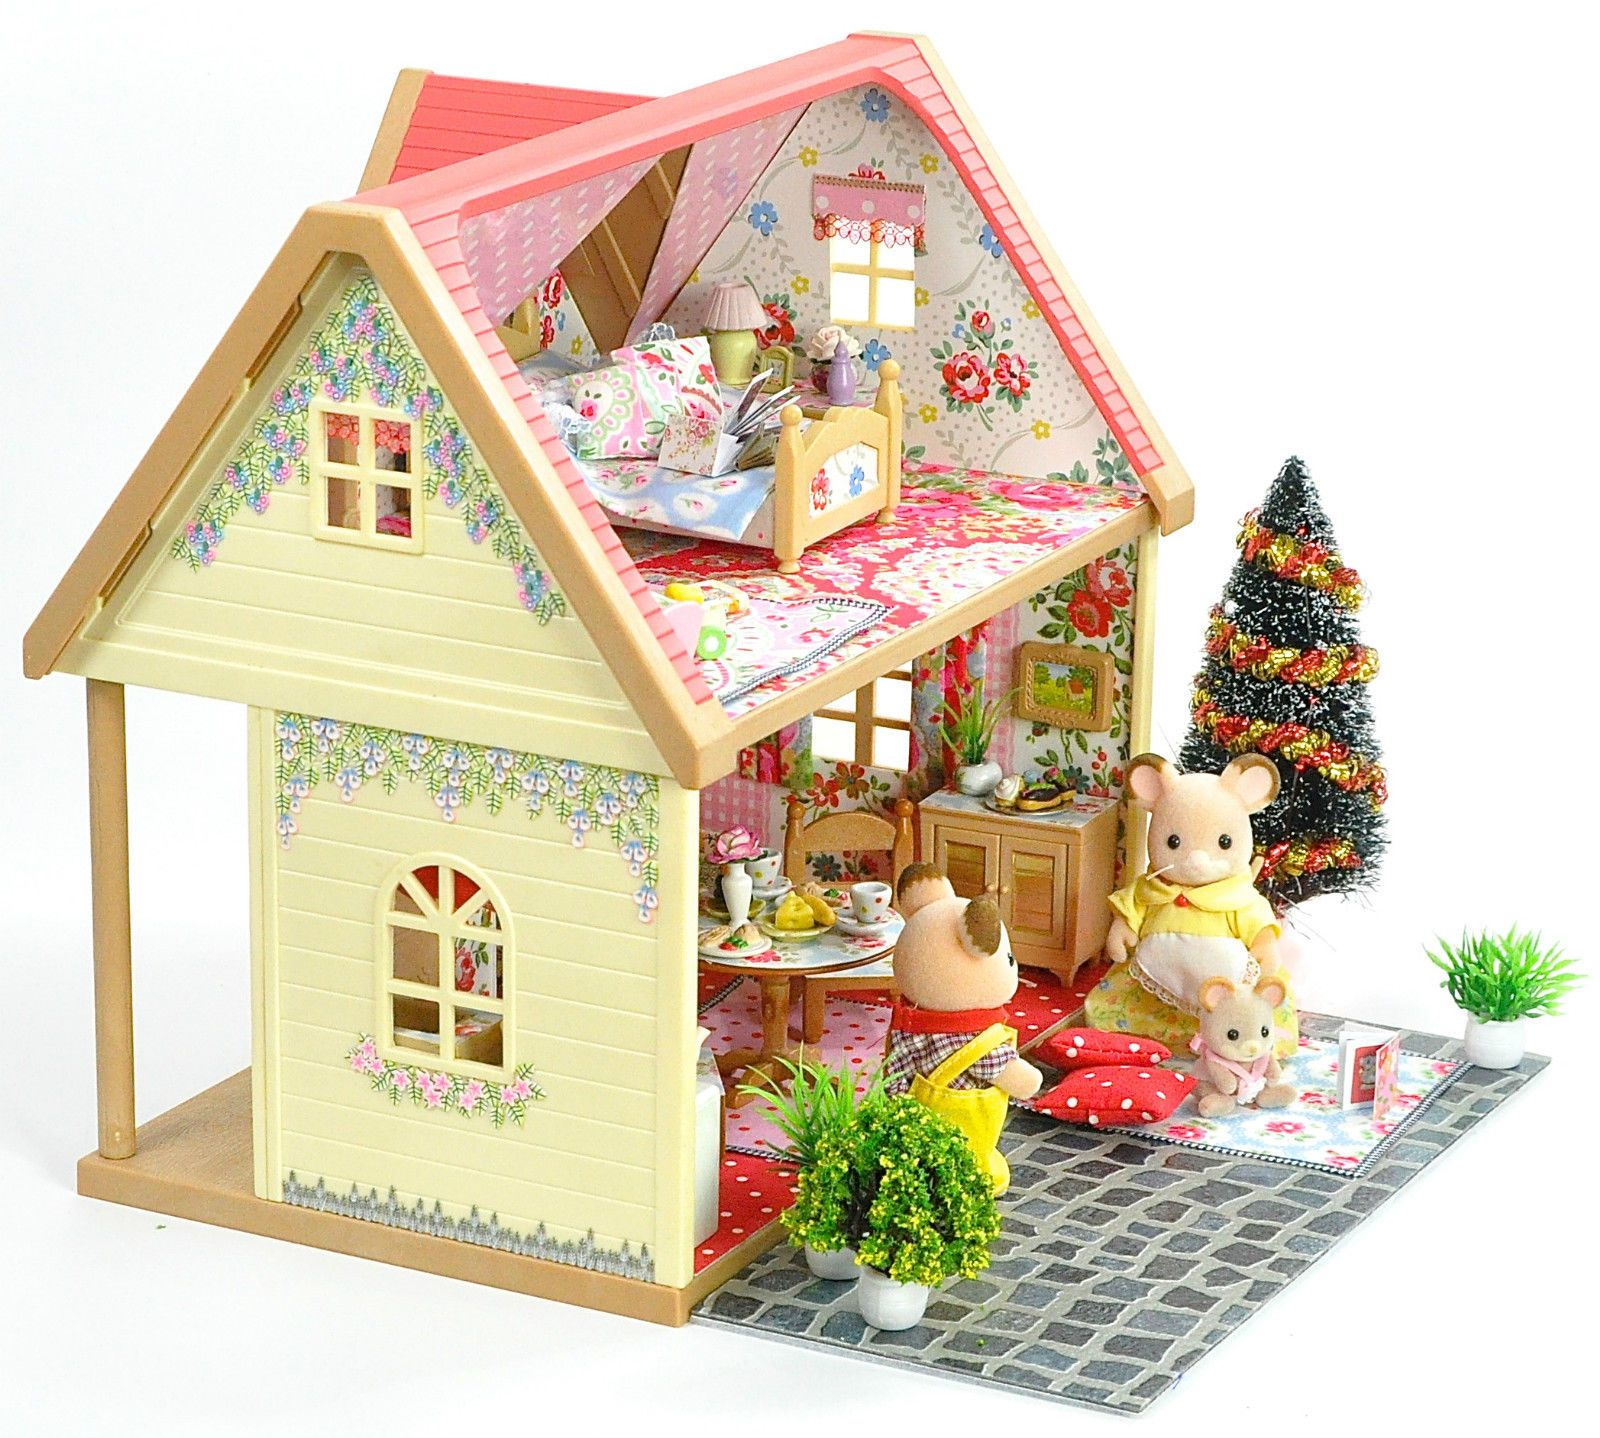 Sylvanian Families Deluxe Country House Christmas Set Up